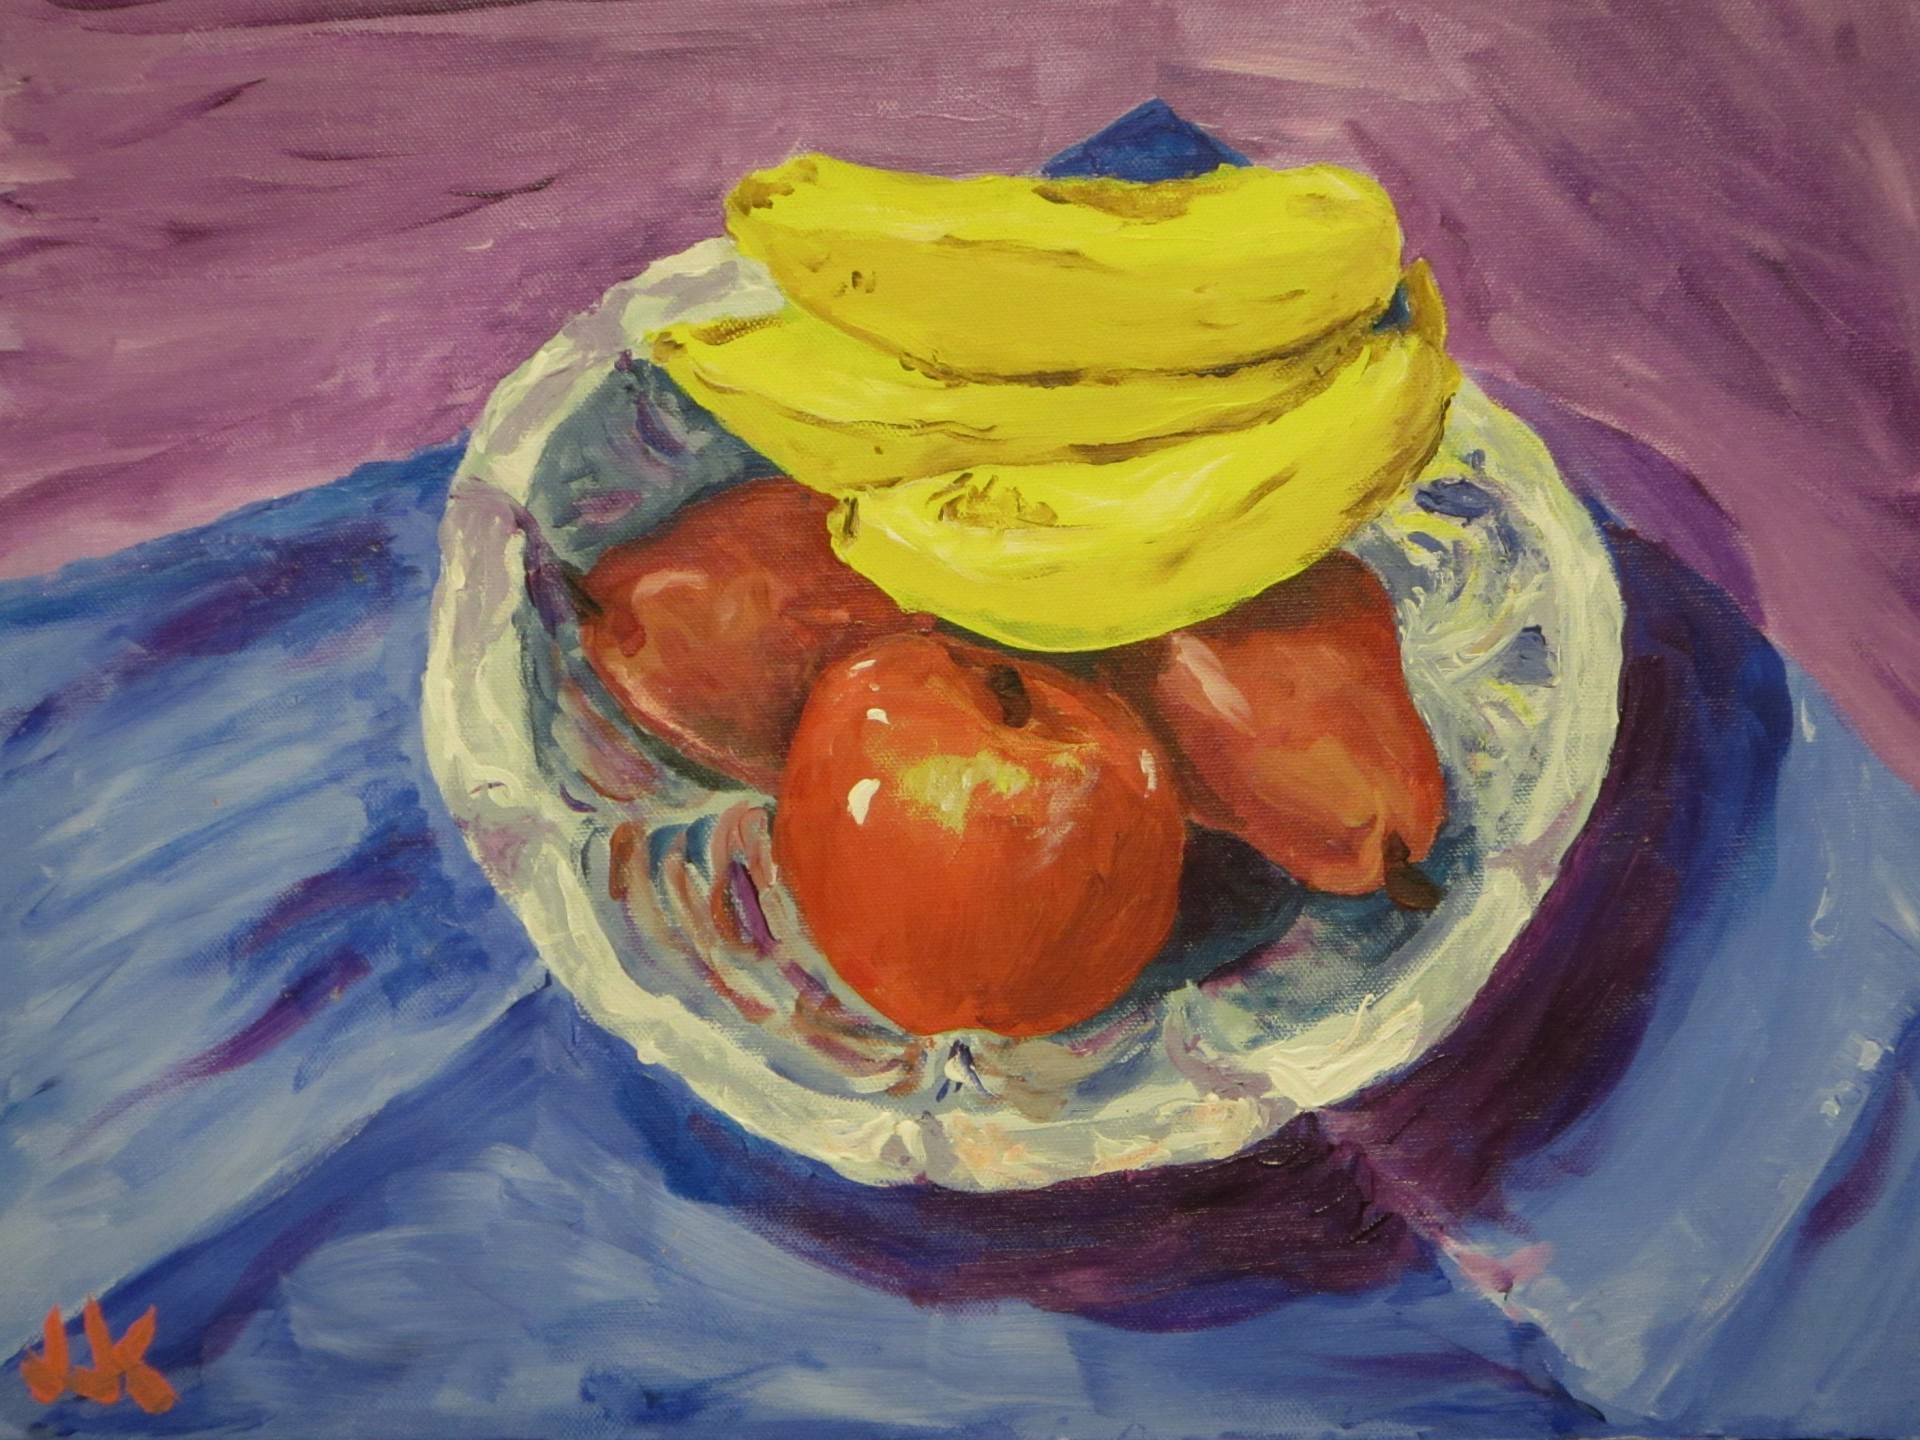 Acrylic on canvas still life painting of bananas, pears and an apple in a pewter bowl.